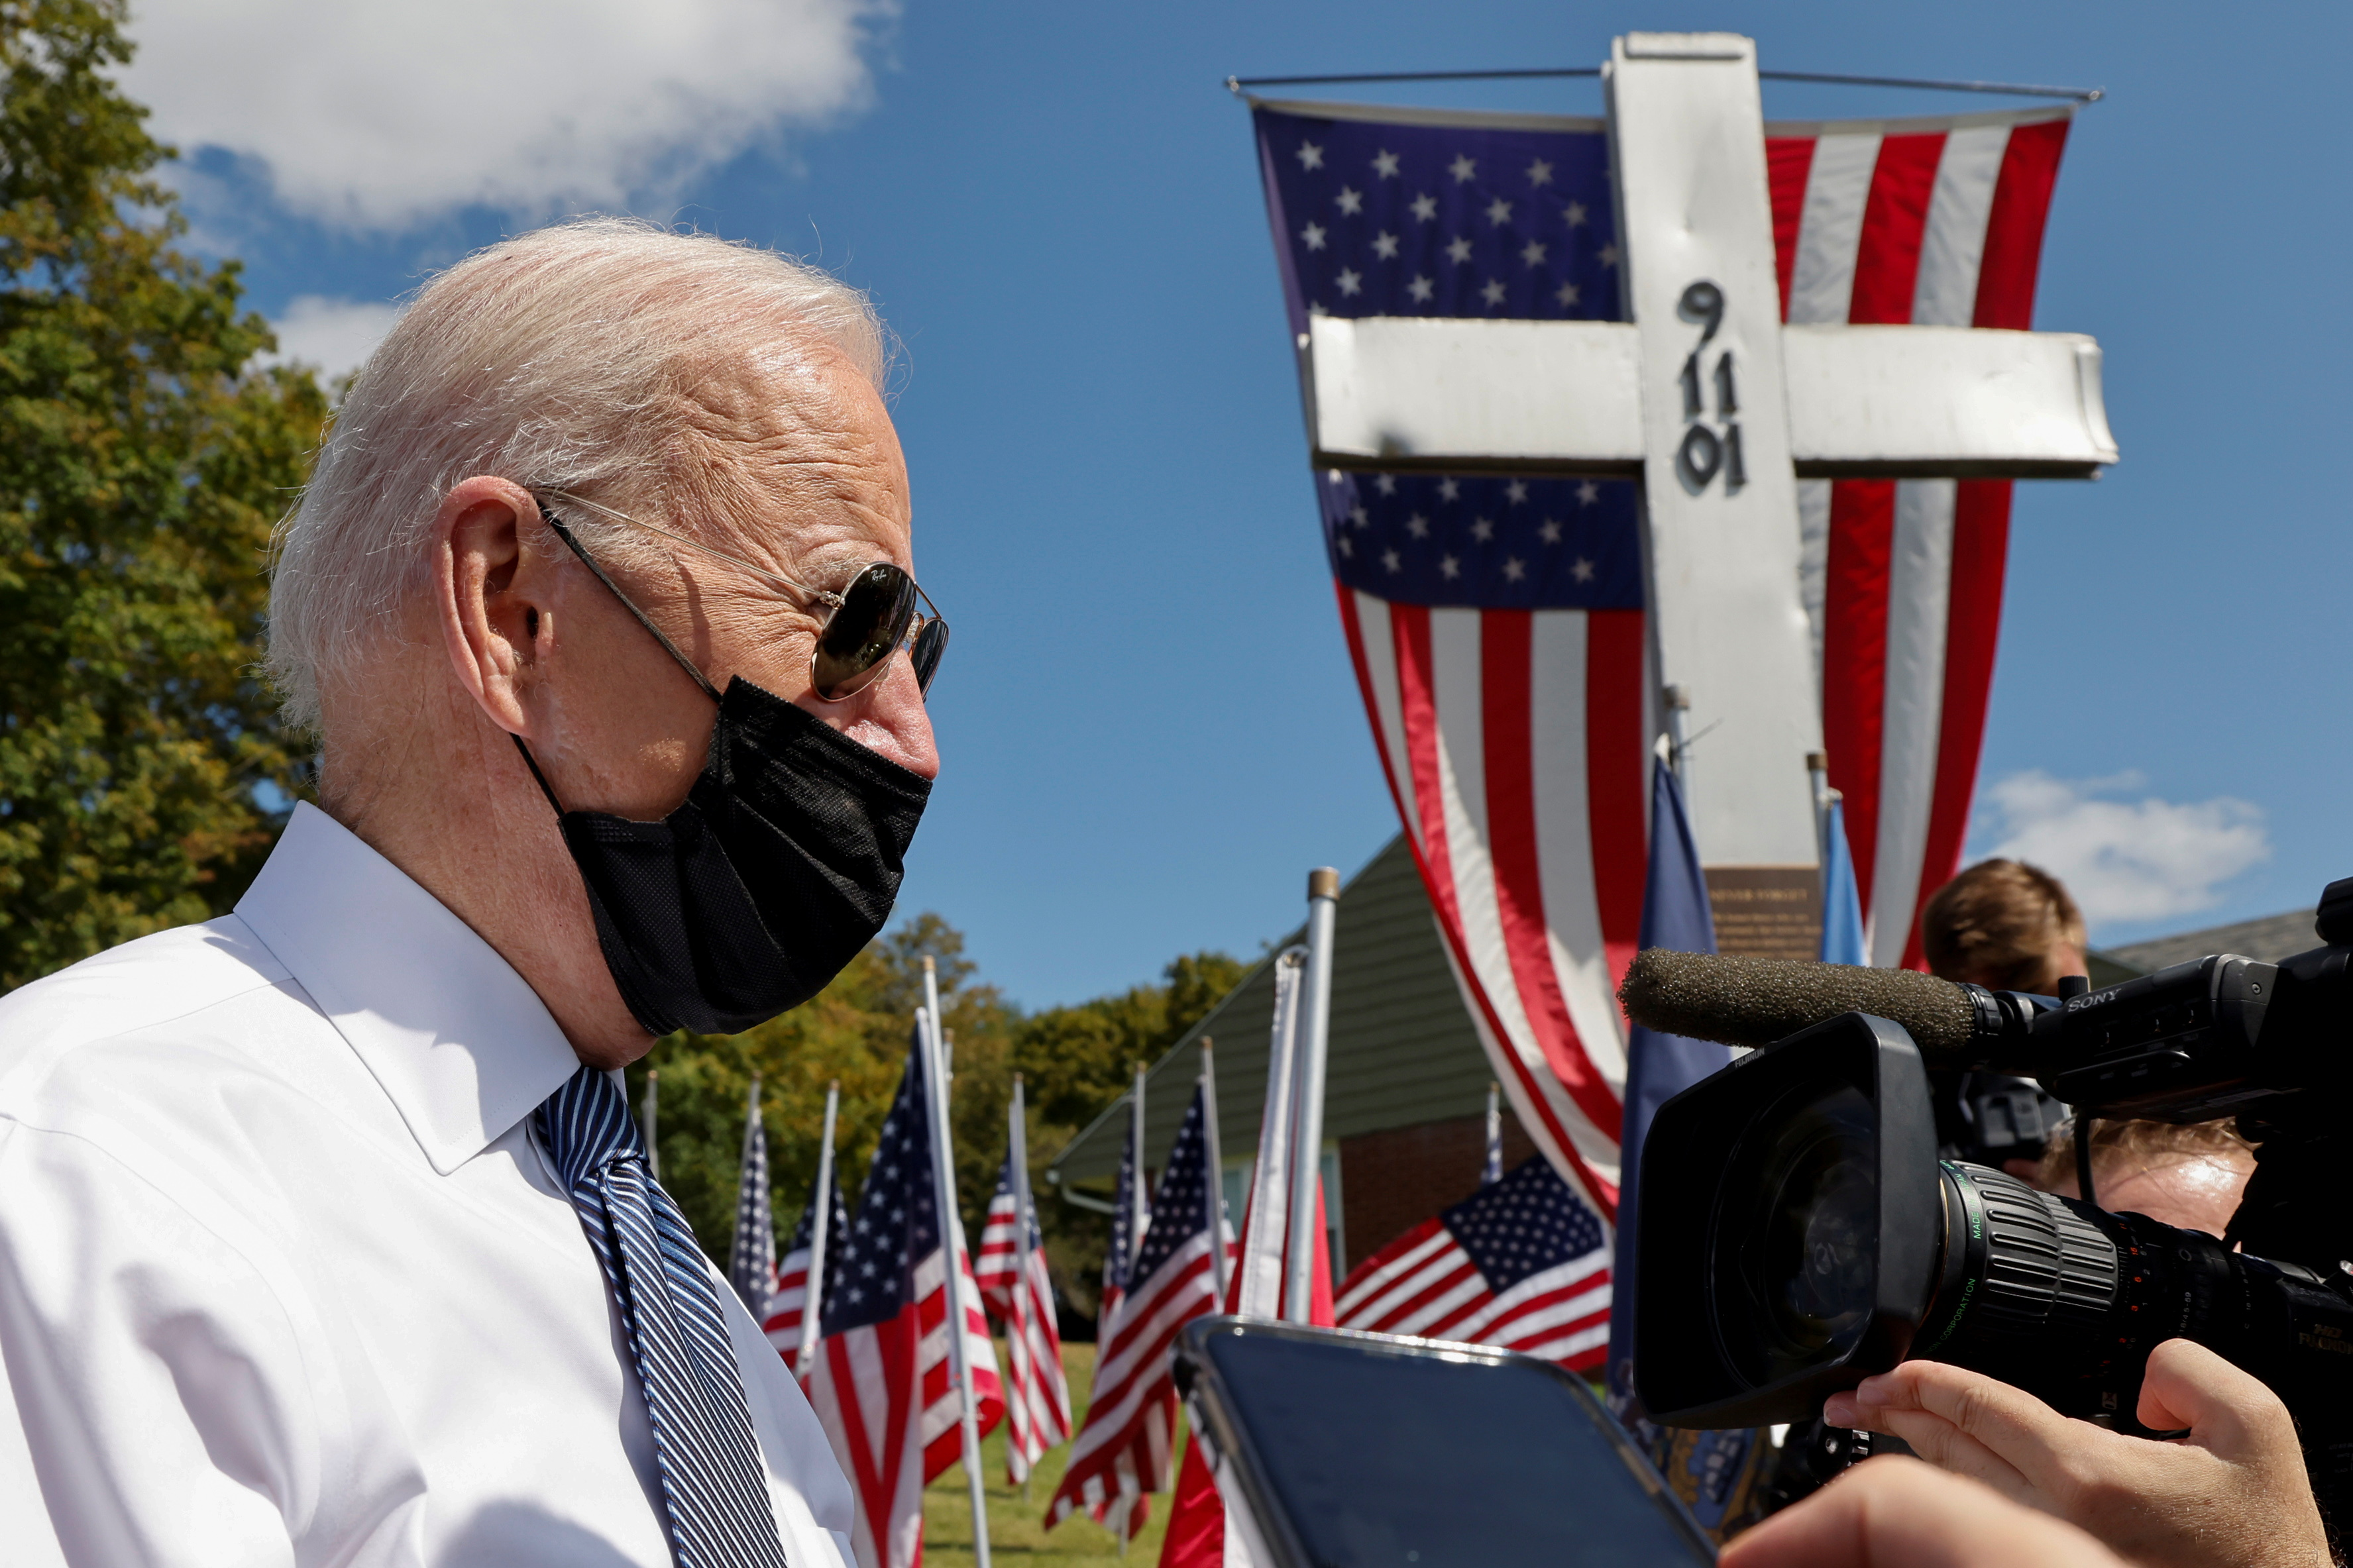 U.S. President Joe Biden speaks to reporters before paying his respects at a 9/11 memorial outside the Shanksville volunteer fire station, as he and first lady Jill Biden stopped at the fire hall after visiting the nearby site where the hijacked United Airlines Flight 93 plane crashed, on the 20th anniversary of the September 11, 2001 attacks, in Shanksville, Pennsylvania, U.S., September 11, 2021.  REUTERS/Jonathan Ernst